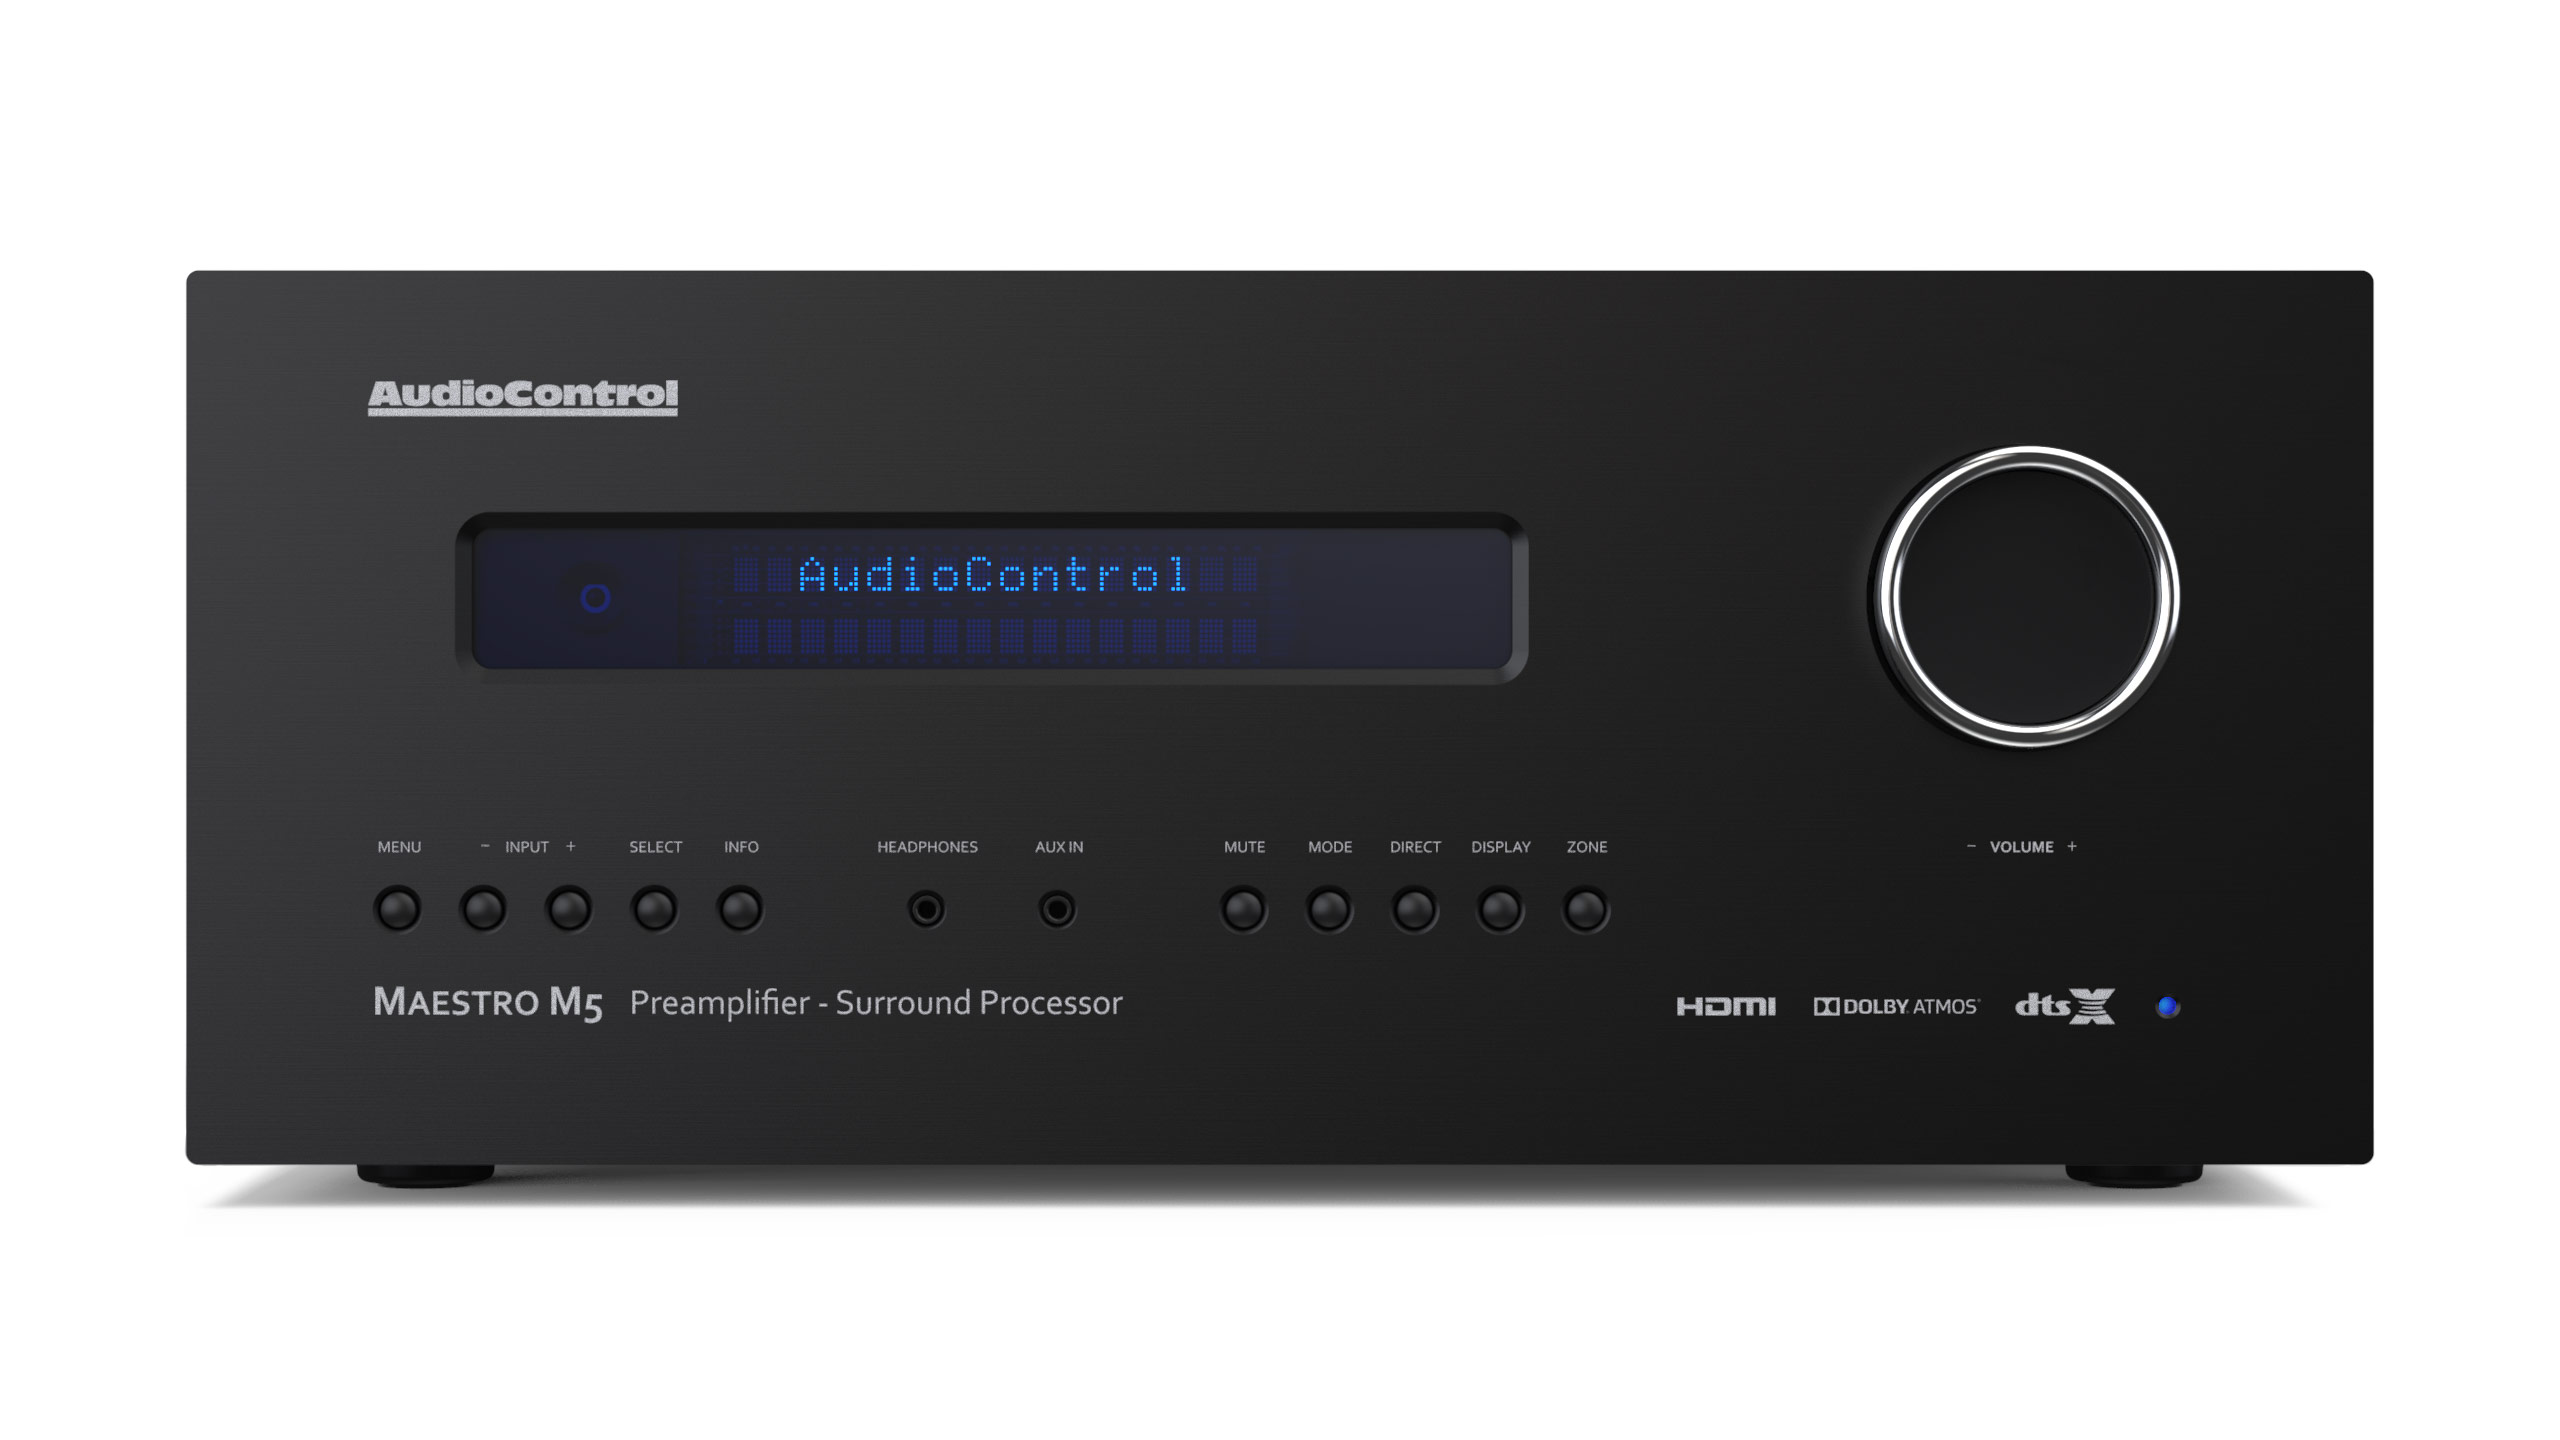 news audiocontrol car alternator wiring diagram the maestro m5 is based upon the award winning audio and video platform utilized in audiocontrol's line of home theater receivers, delivering the features